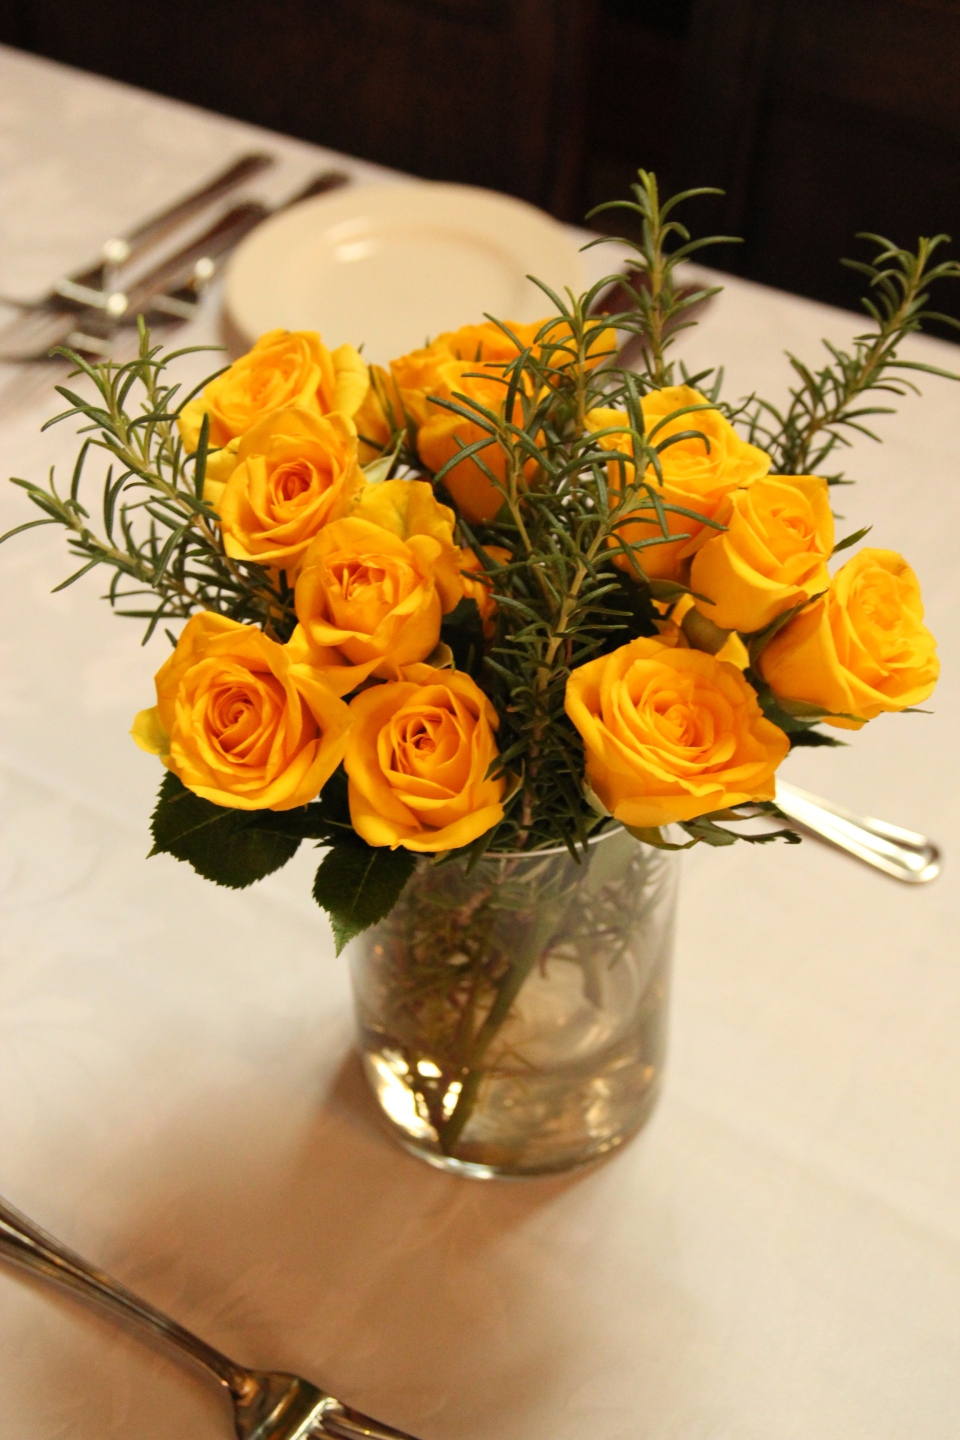 An abundance of yellow spray roses & rosemary sprigs